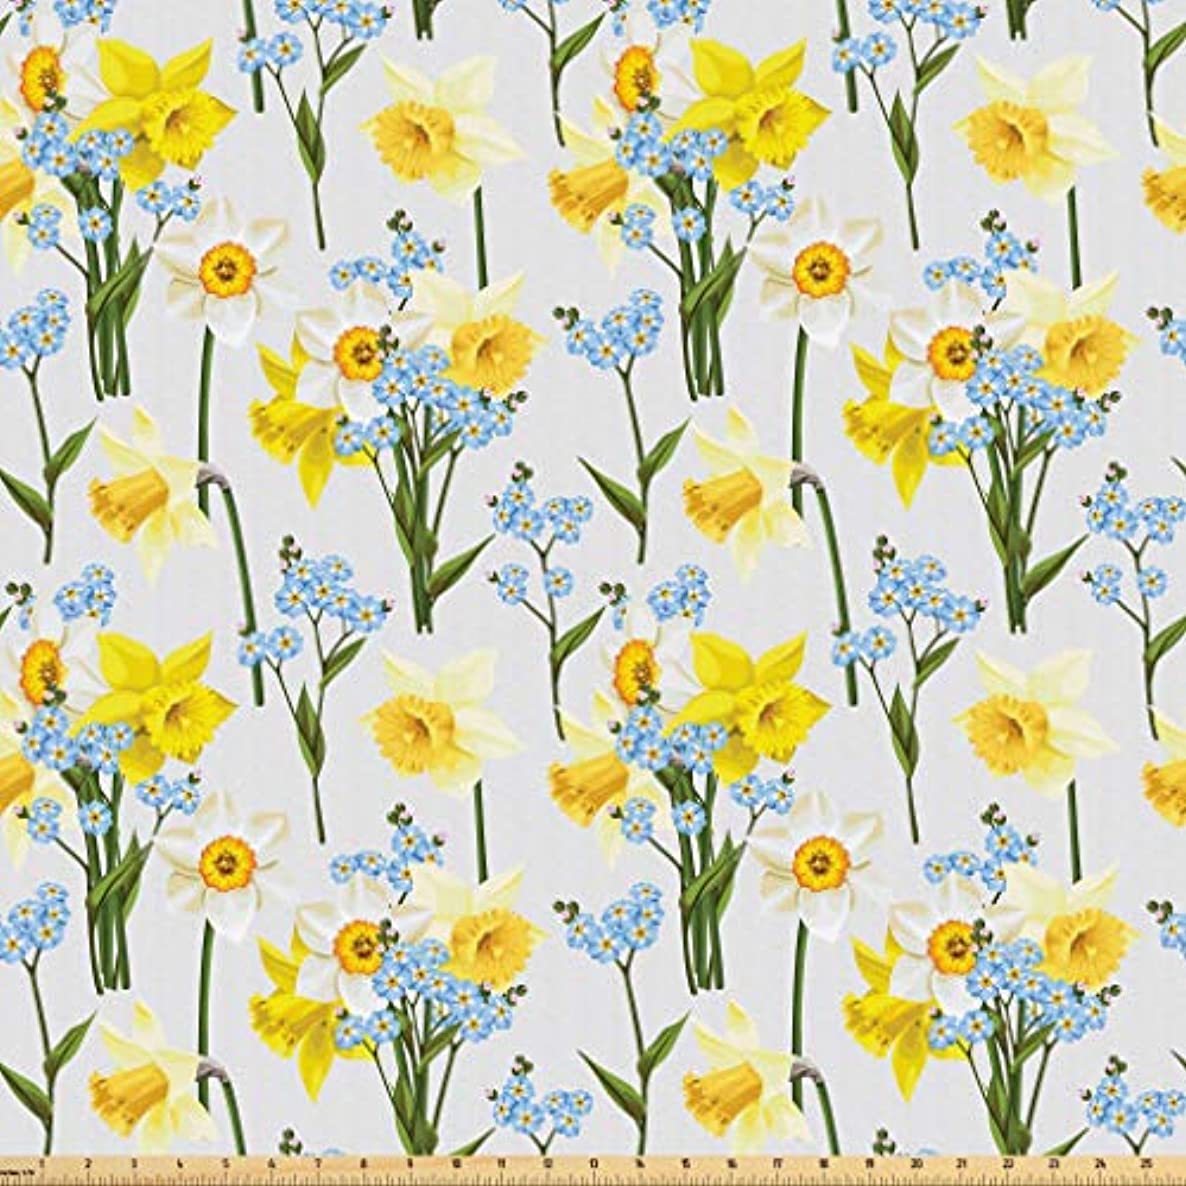 Lunarable Daffodils Fabric by The Yard, Forget Me Not Flowers and Daffodil Blossom Leaf Bouquet Spring Garden, Microfiber Fabric for Arts and Crafts Textiles & Decor, 3 Yards, Yellow Blue Green